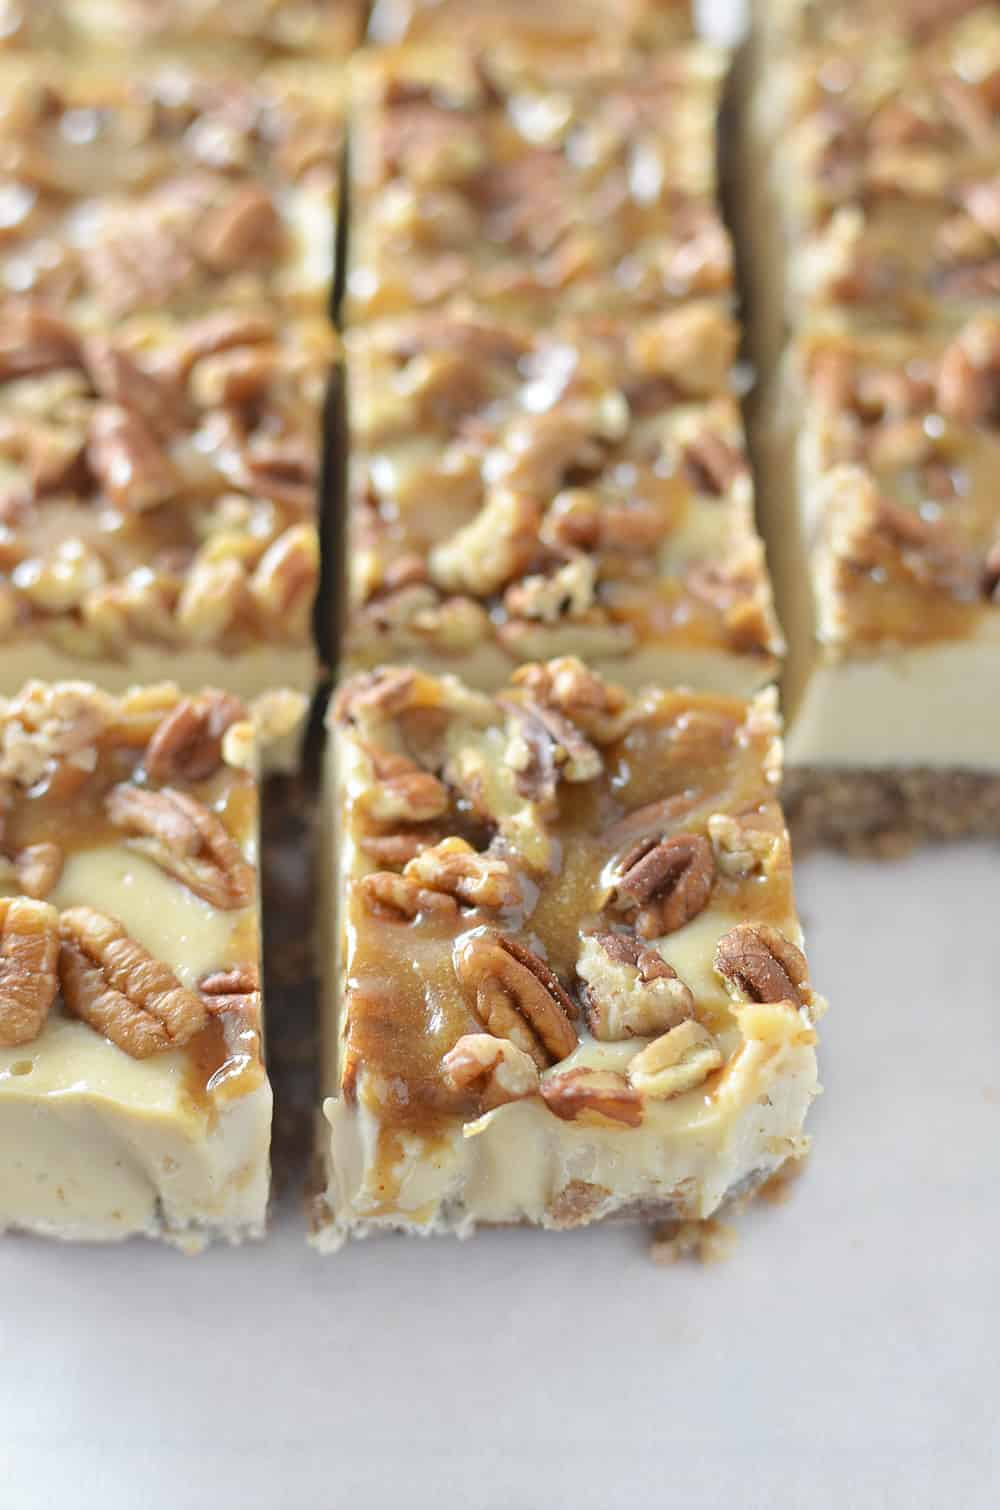 Pecan Pie Cheesecake Bars! Vegan and Gluten-Free! You are going to love these clean eating bars! Pecan Pie crust with dairy-free, no bake cheesecake filling. Topped with toasted pecans and maple-caramel syrup. A must make for Thanksgiving, Christmas or the Holidays! | www.delishknowledge.com